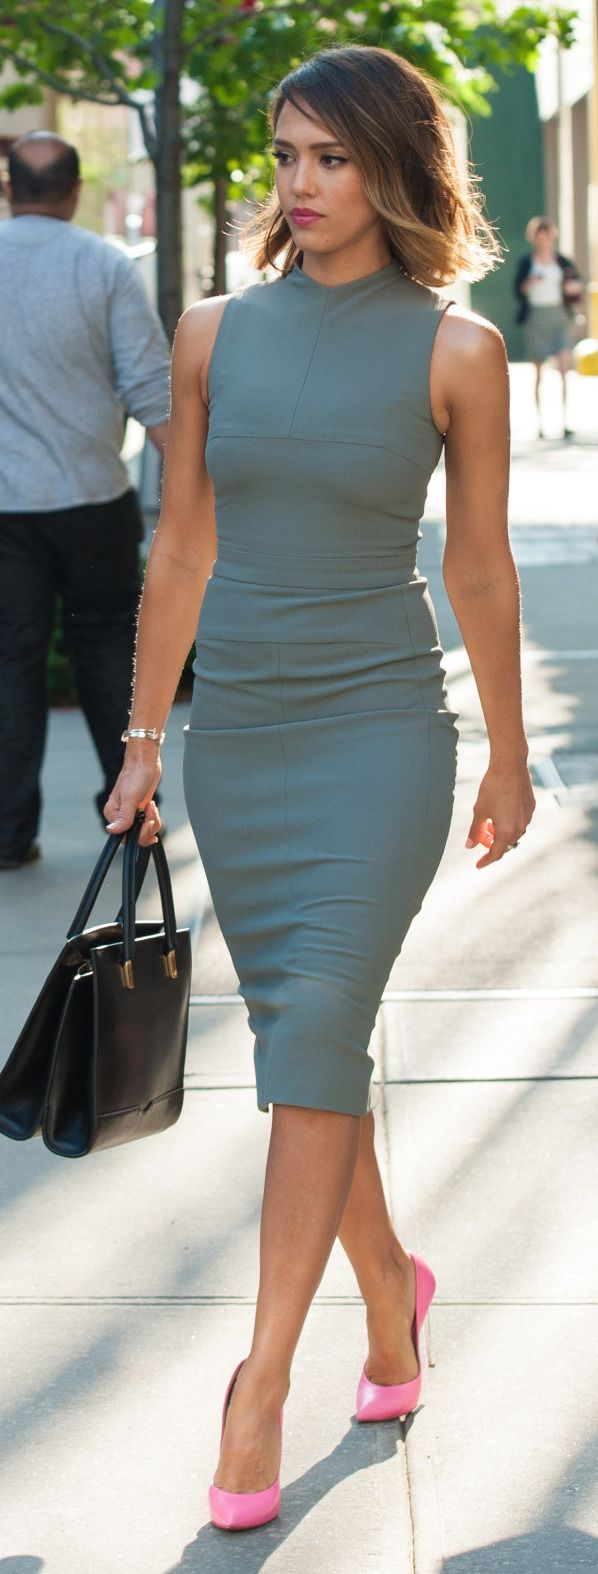 Blue ombre style dress